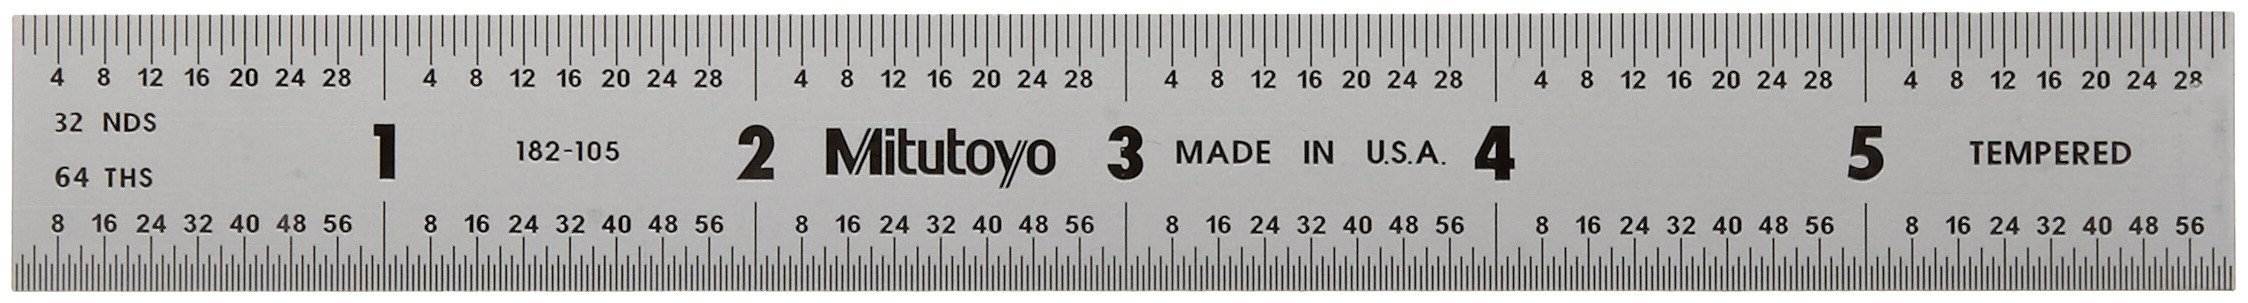 Mitutoyo 182-105, Steel Rule, 6'' X 150mm, (1/32, 1/64'', 1mm, 1/2mm), 3/64'' Thick X 3/4'' Wide, Satin Chrome Finish Tempered Stainless Steel